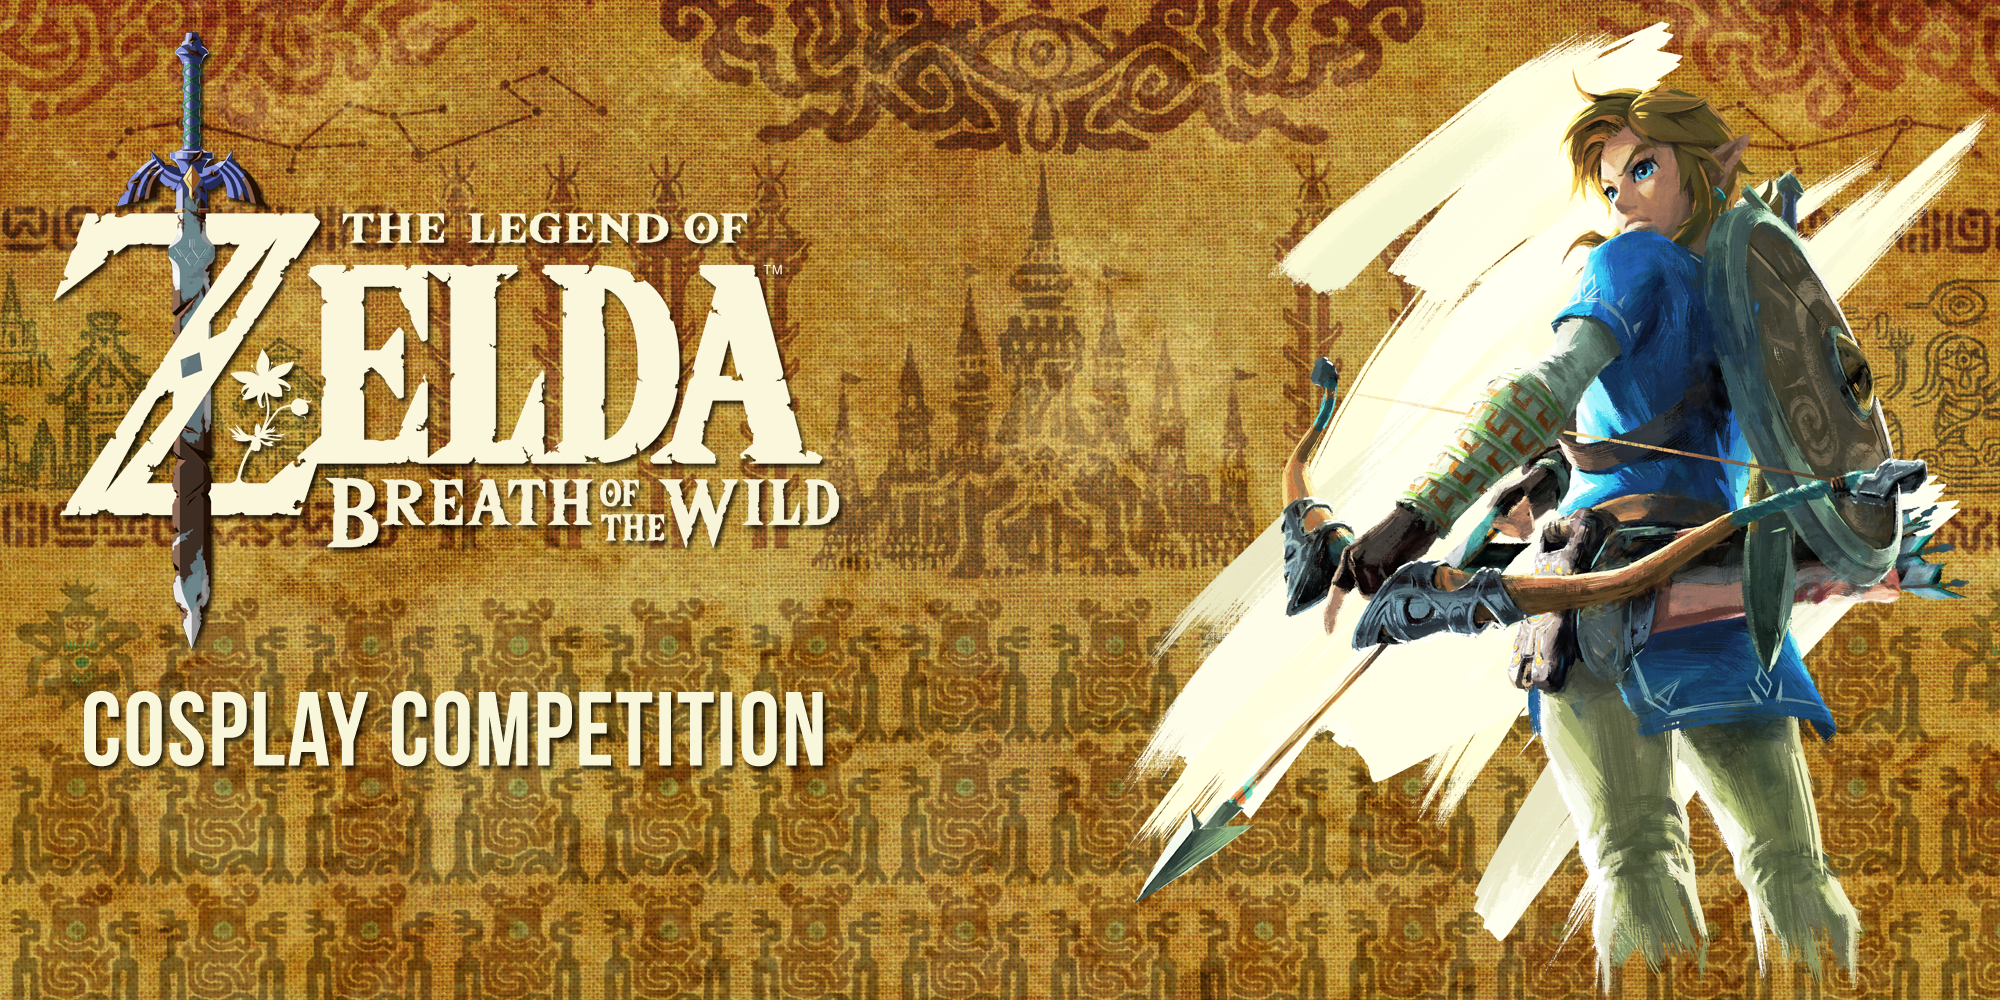 Show off your The Legend of Zelda cosplay at Insomnia60 for a chance to win some legendary loot